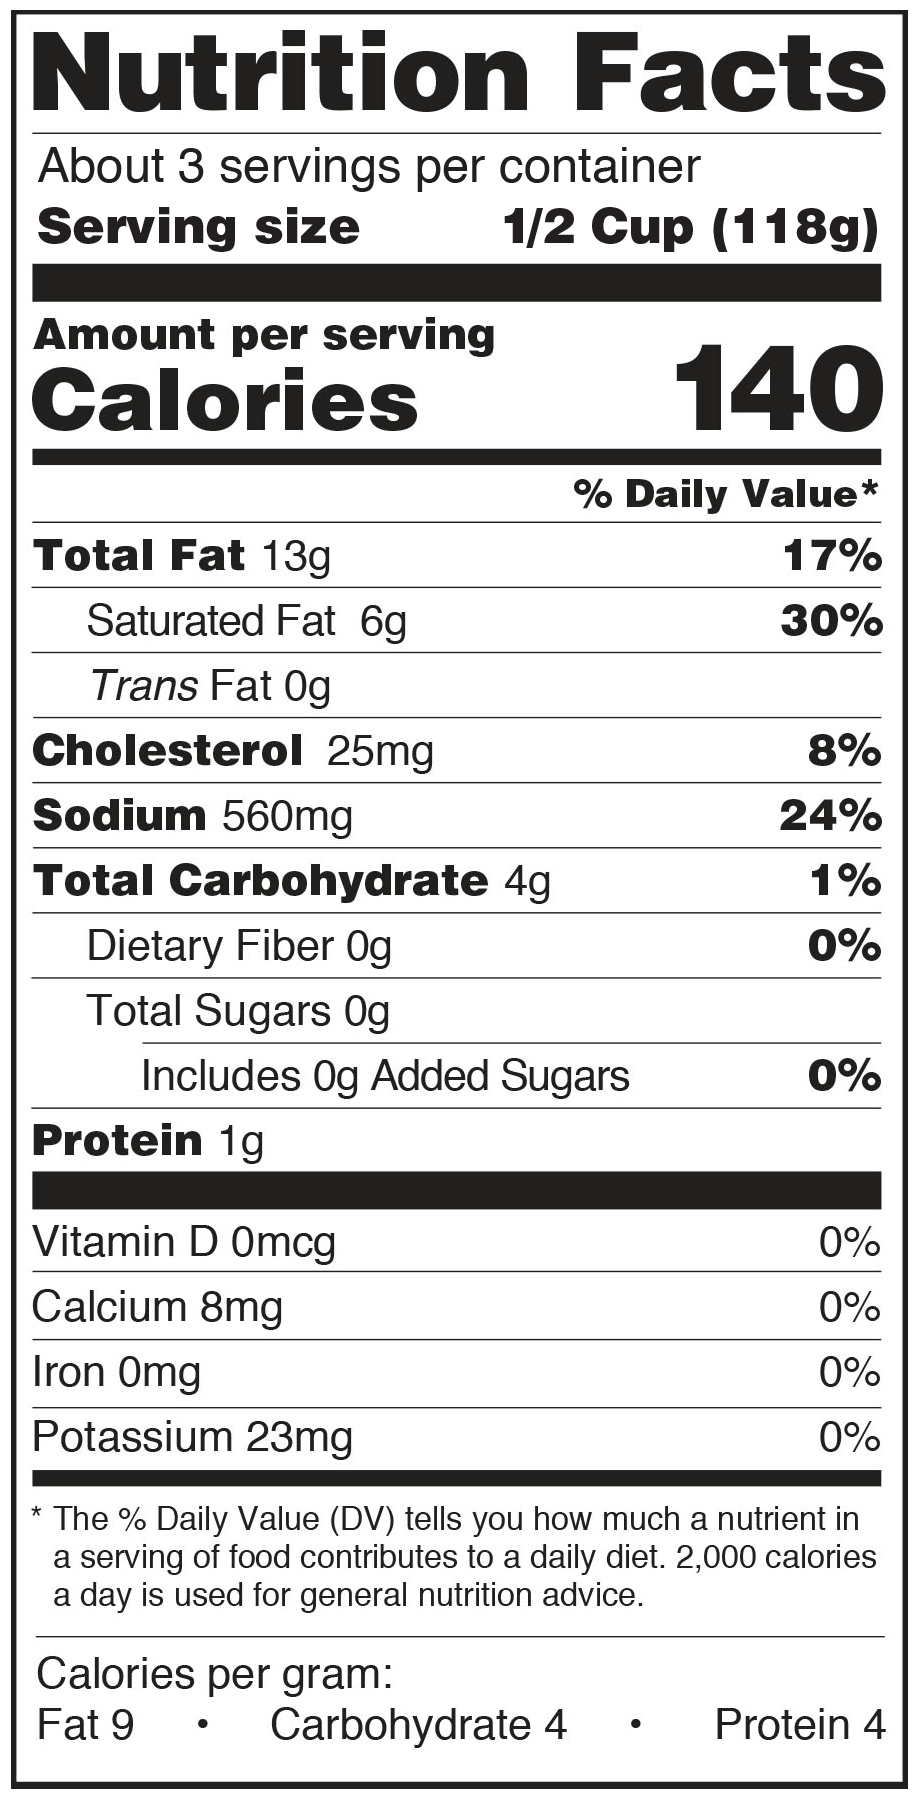 Paesana Piccata Nutrition Facts Panel